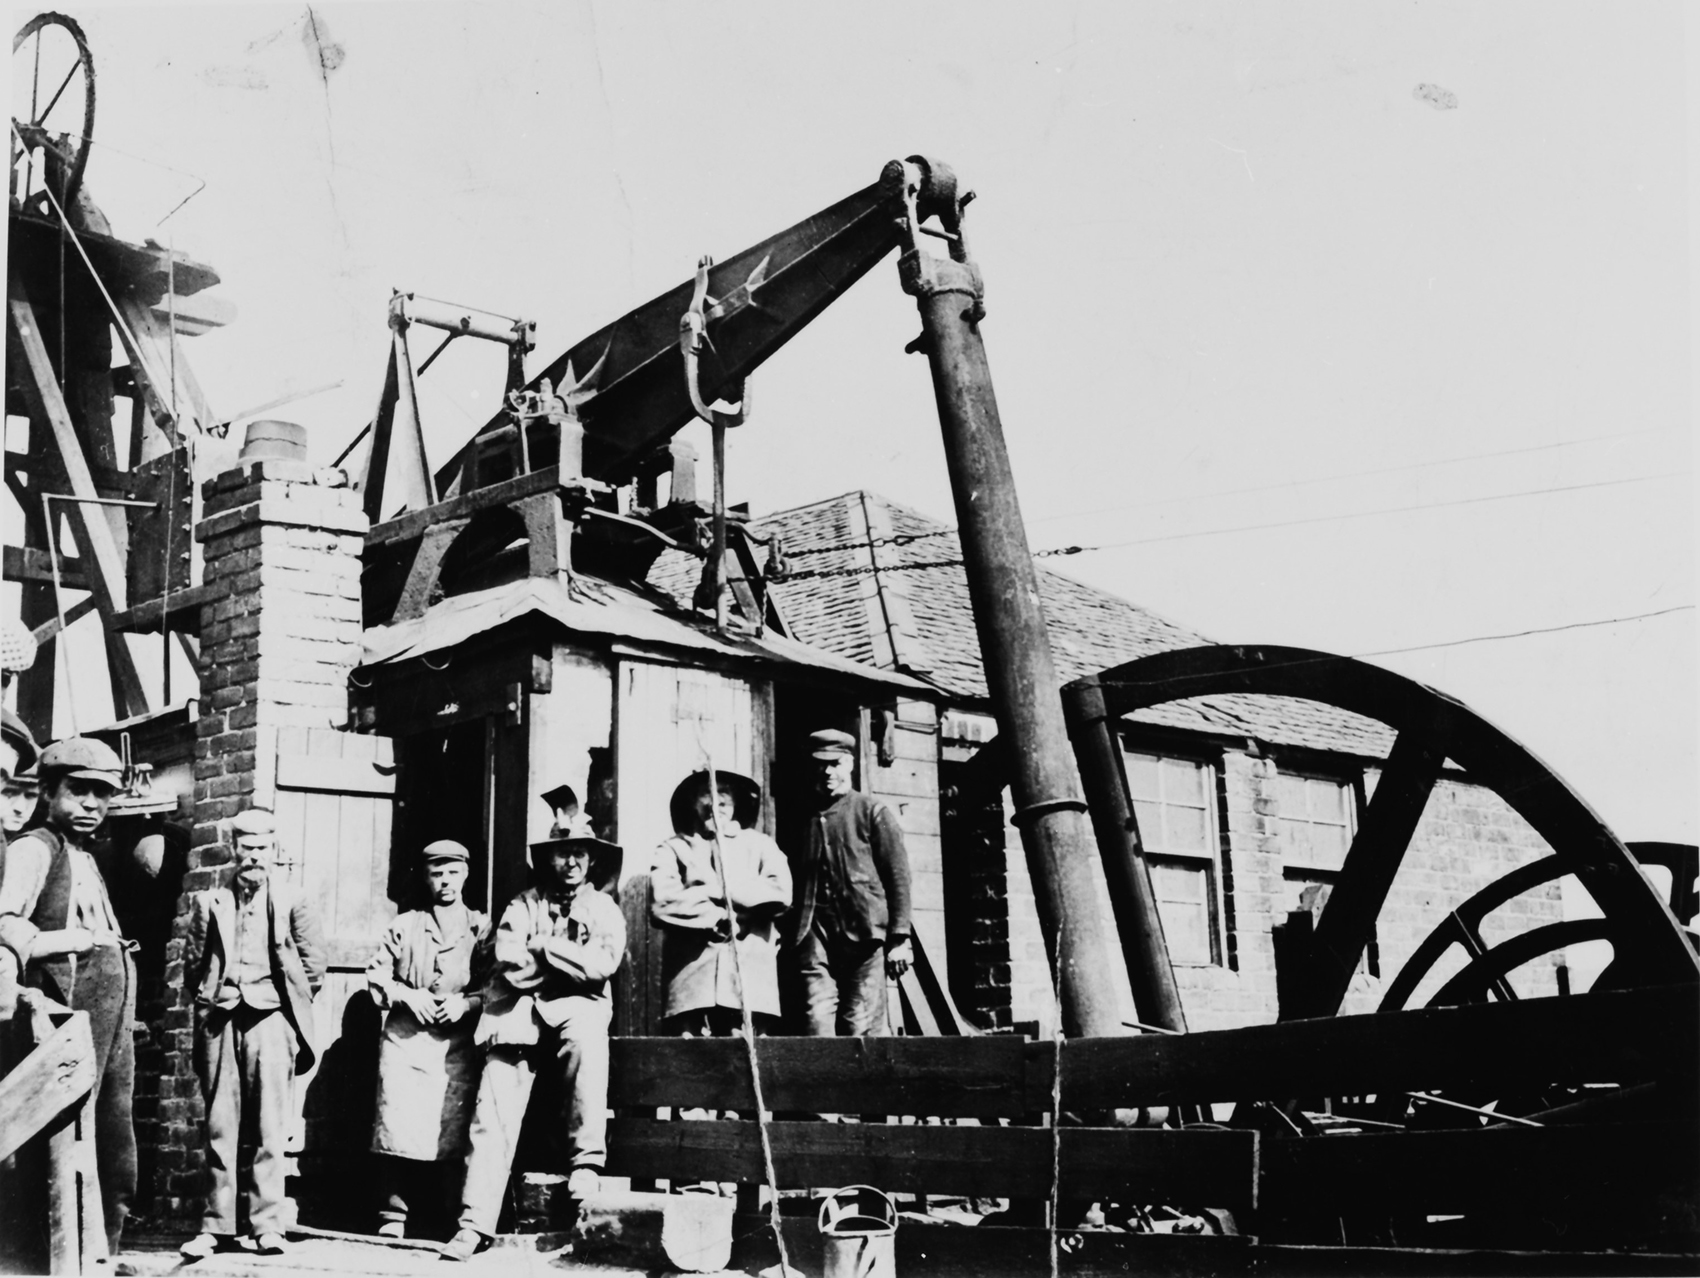 The 1810 Newcomen winding engine at Farme Colliery, Rutherglen. Seen here in the 1870s the engine is now on display at Summerlee Museum, Coatbridge.